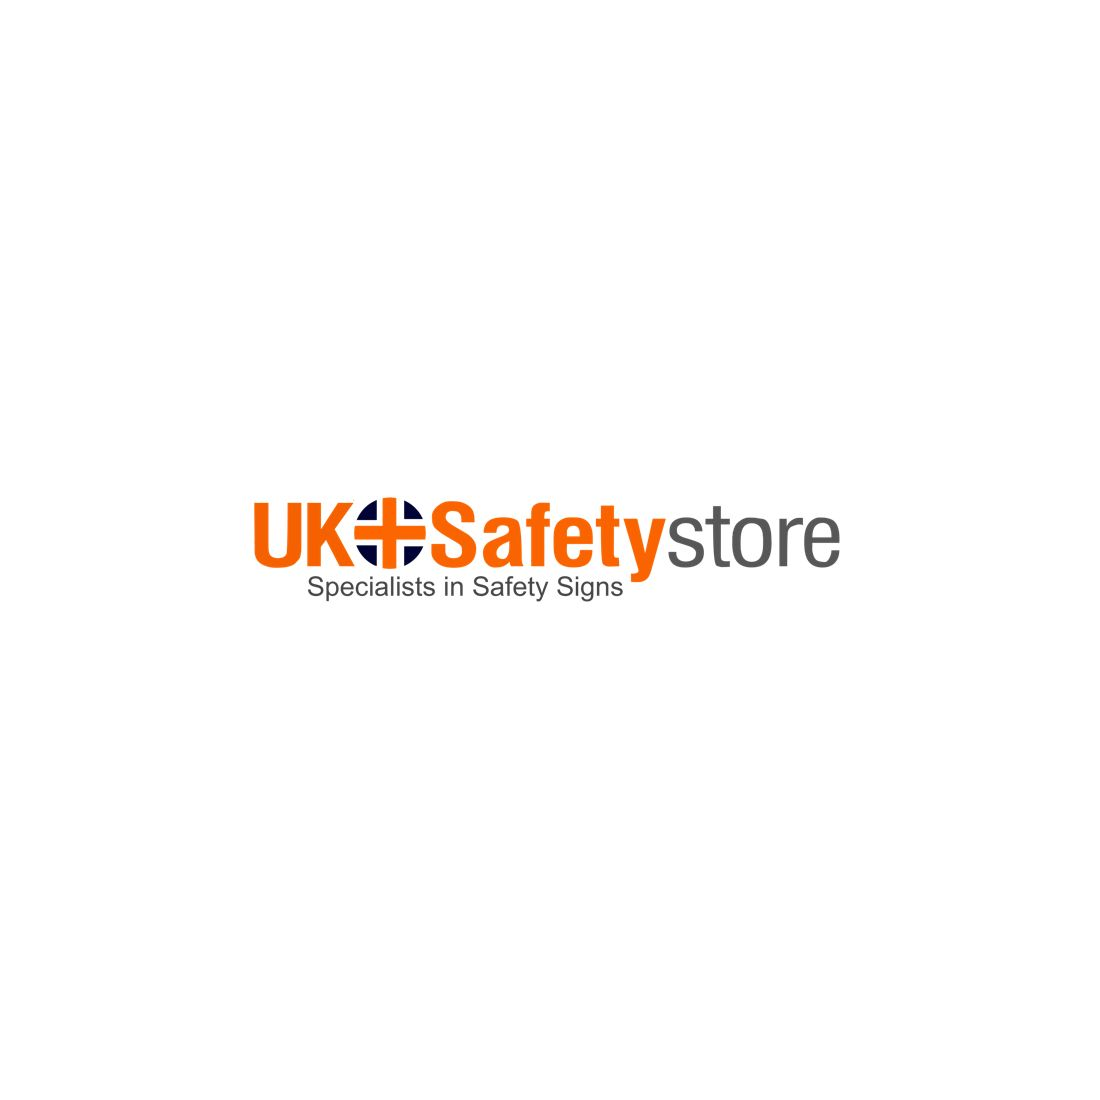 Site Safety Hard Hats Must Be Worn By All Personnel On This Site Multi Message Safety Board